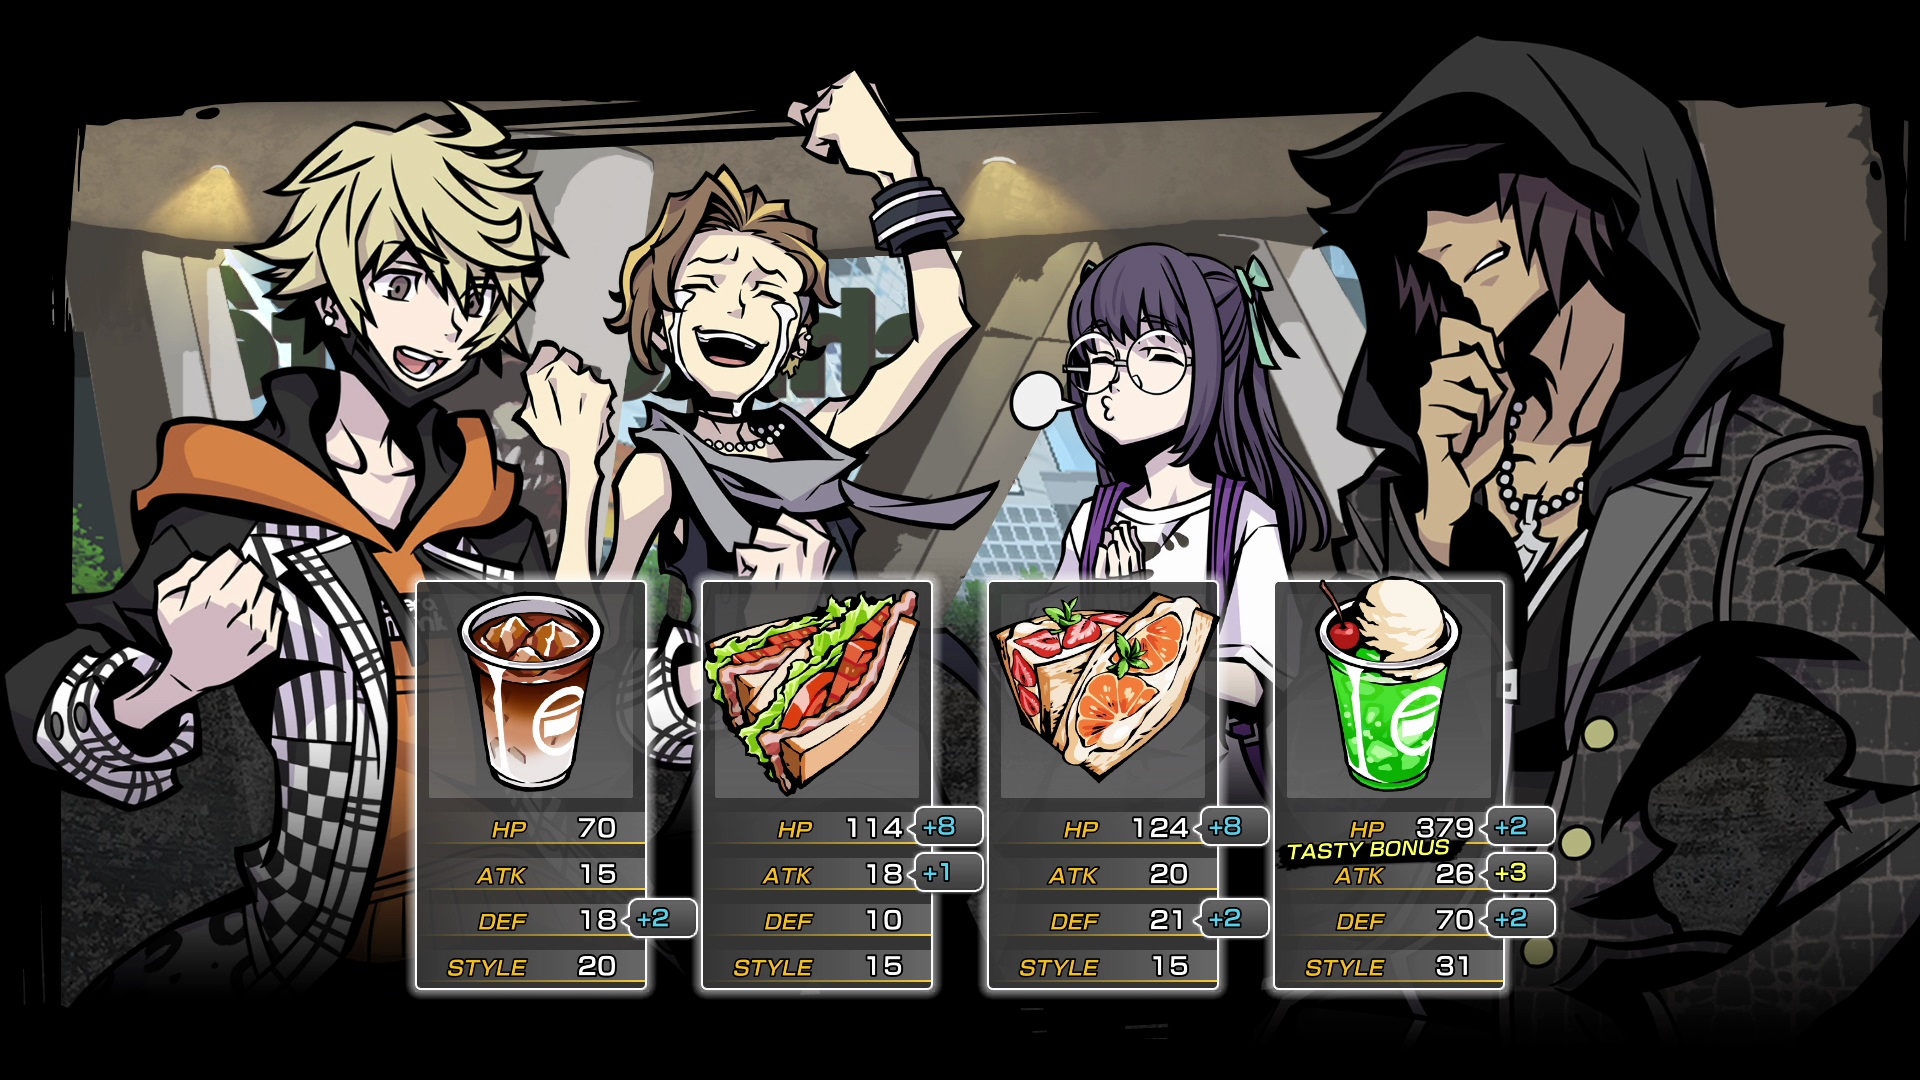 Statistiques des personnages - NEO: The World Ends With You